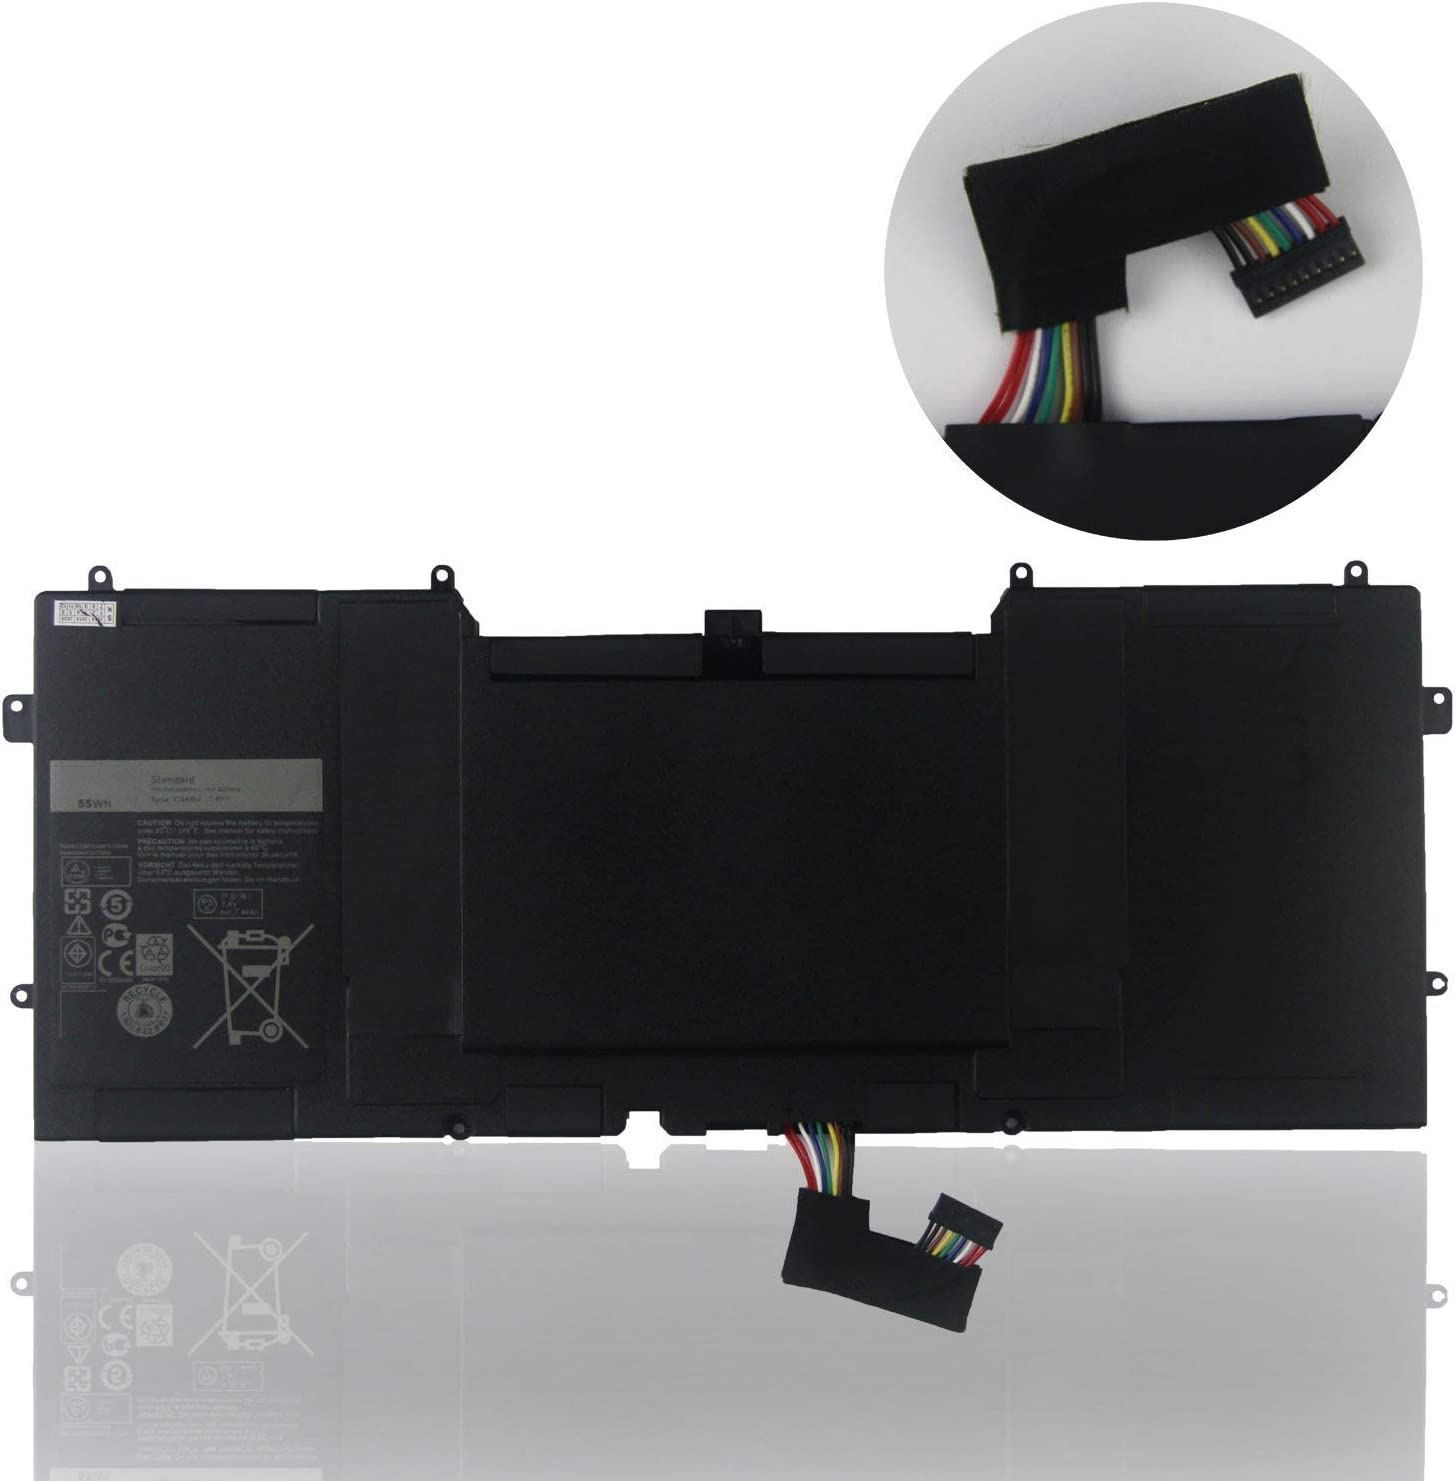 FLIW C4K9V Replacement Battery Compatible with Dell XPS 12 9Q33 -L221X 13 9333 Ultrabook 13 XPS13 13-L321X 13-L322X XPS L321X L322X Series 3H76R 489XN PKH18 [7.4V 55Wh]